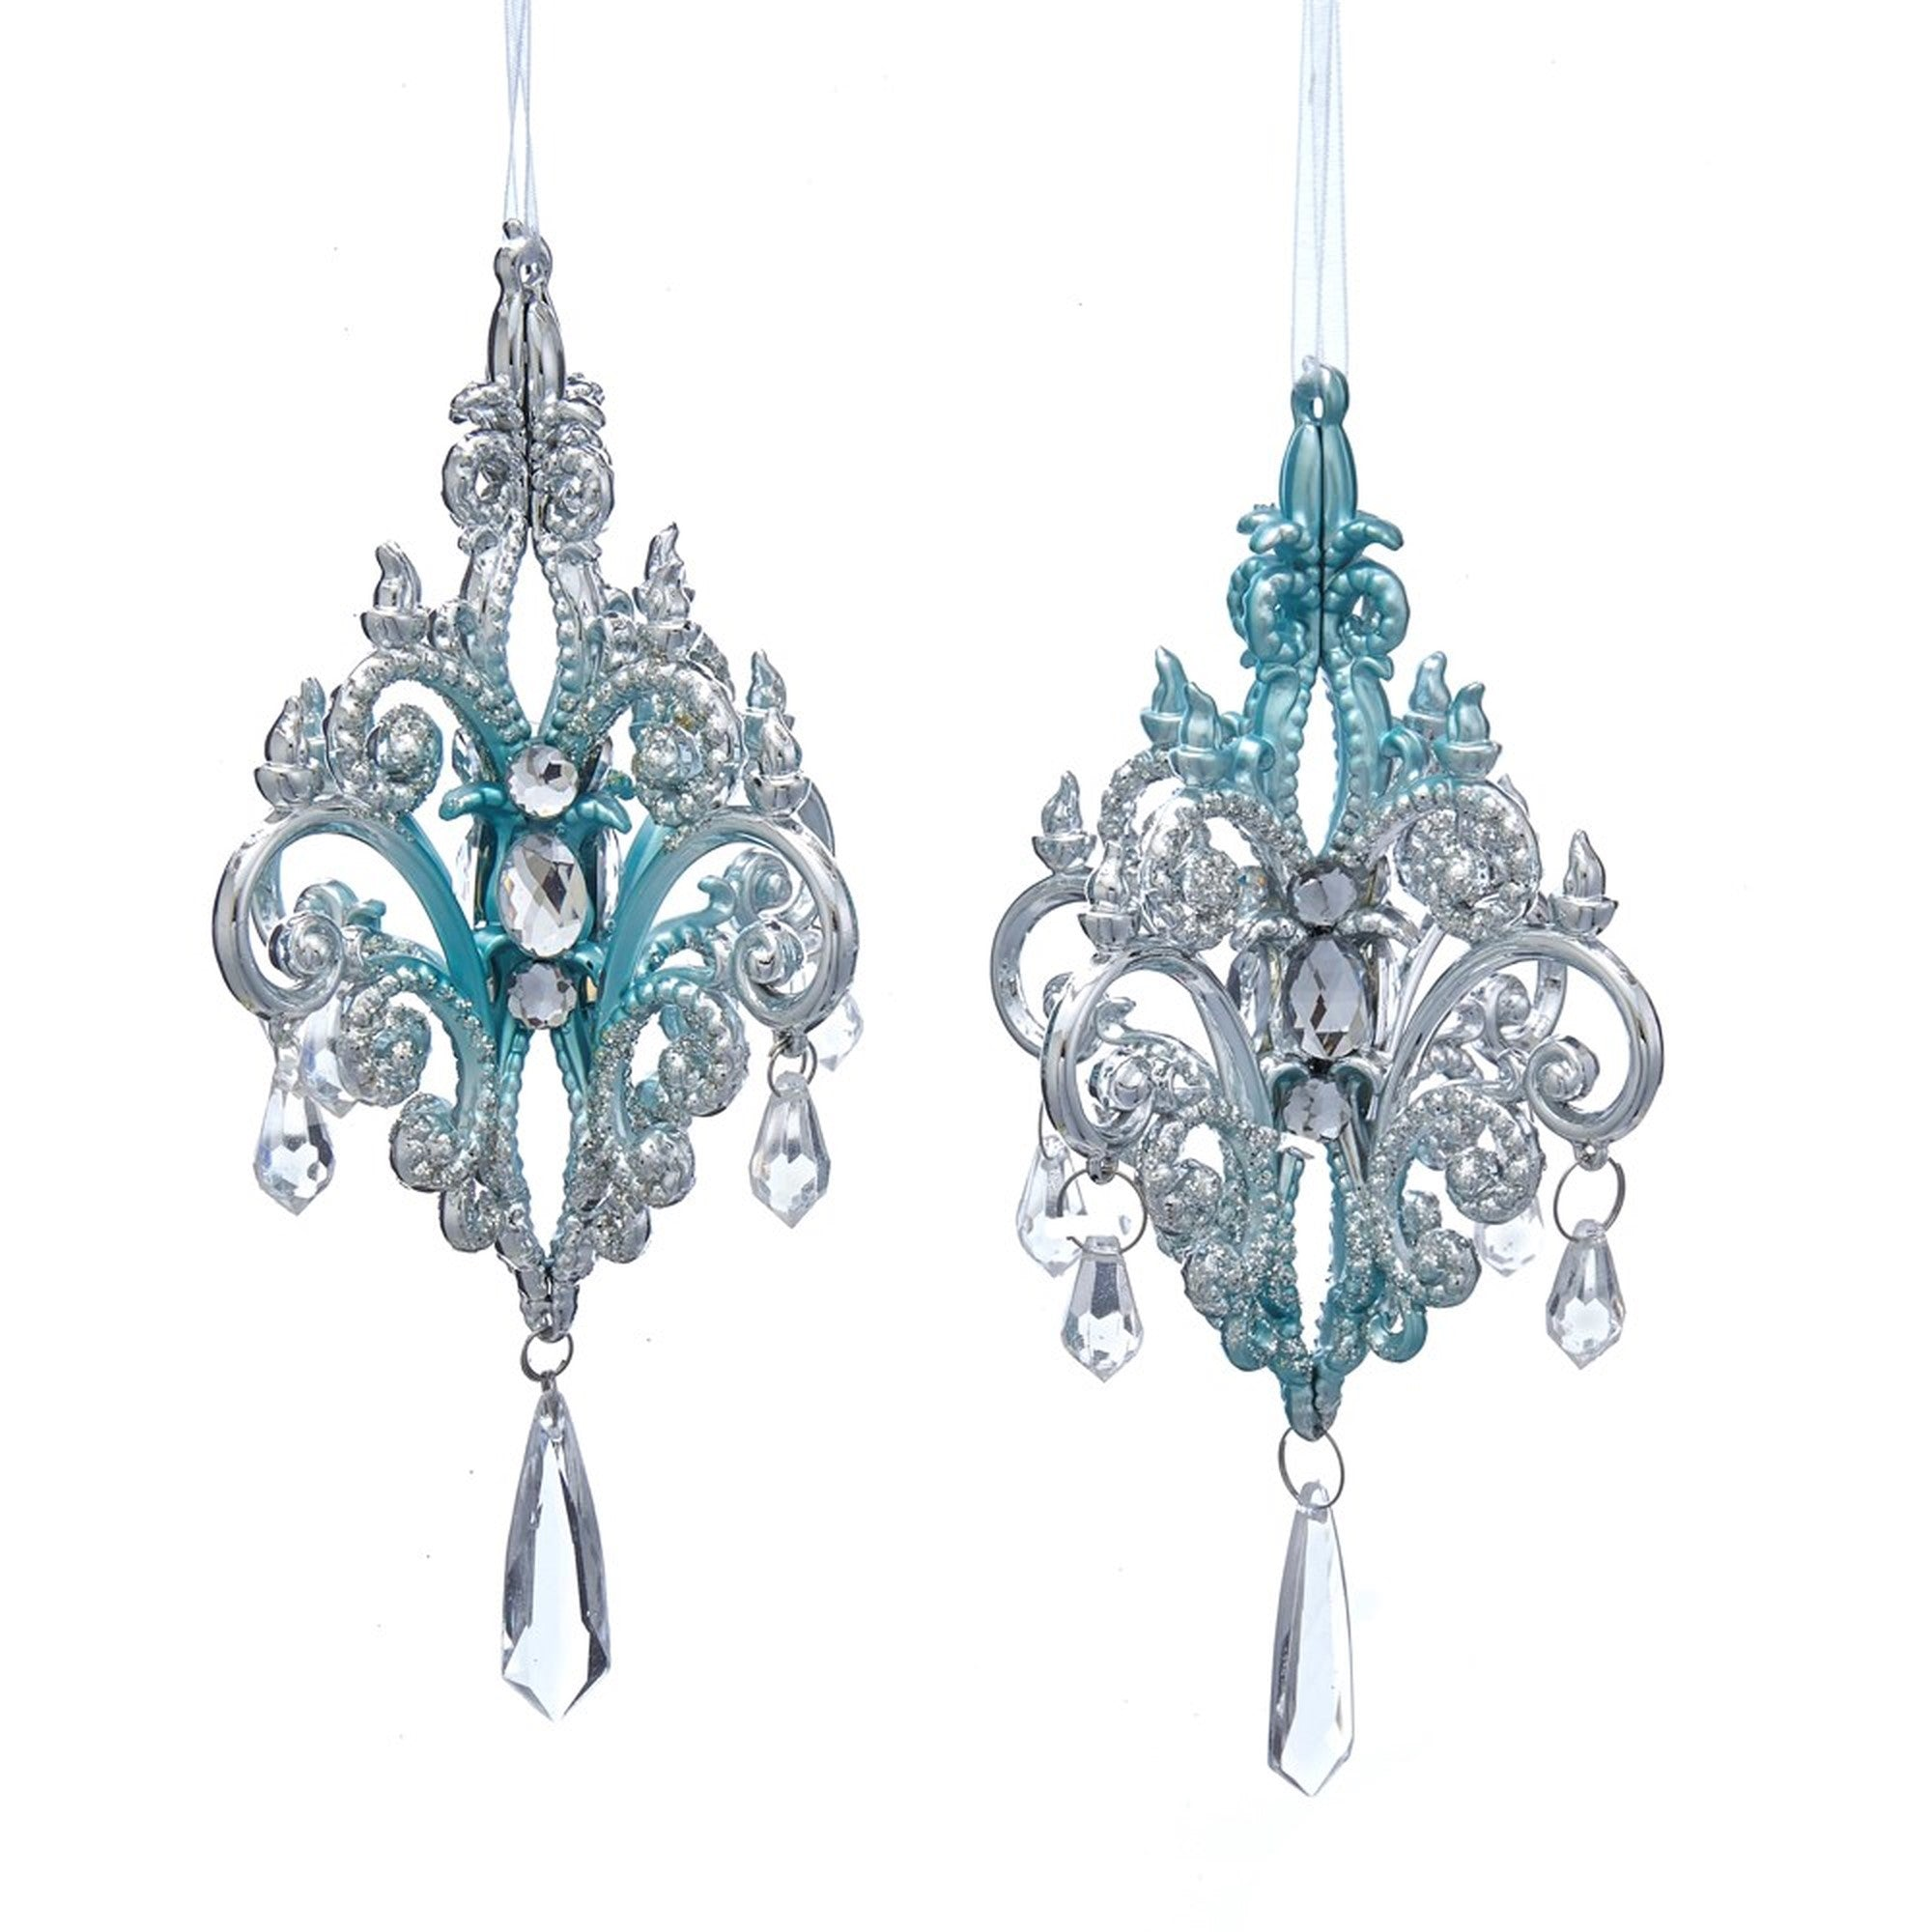 Kurt Adler Tiffany Blue and Silver Chandelier Ornaments | Putti Christmas